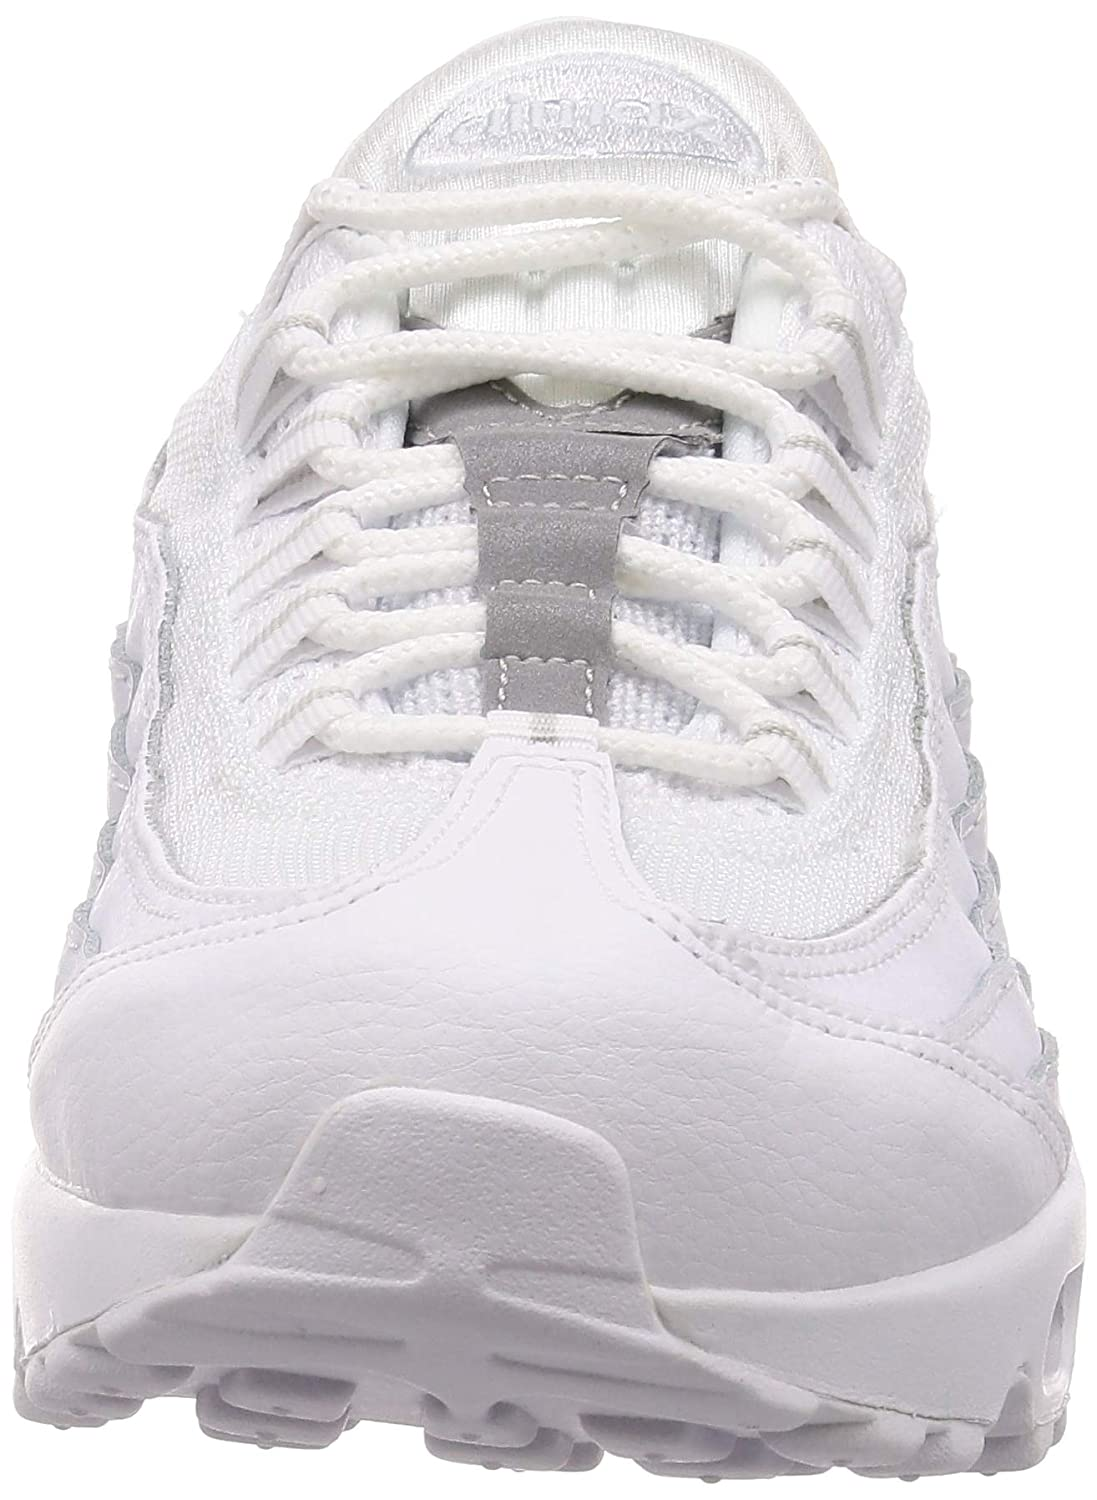 Chaussures de Running Mixte Adulte Nike Air Max 95 Essential ...